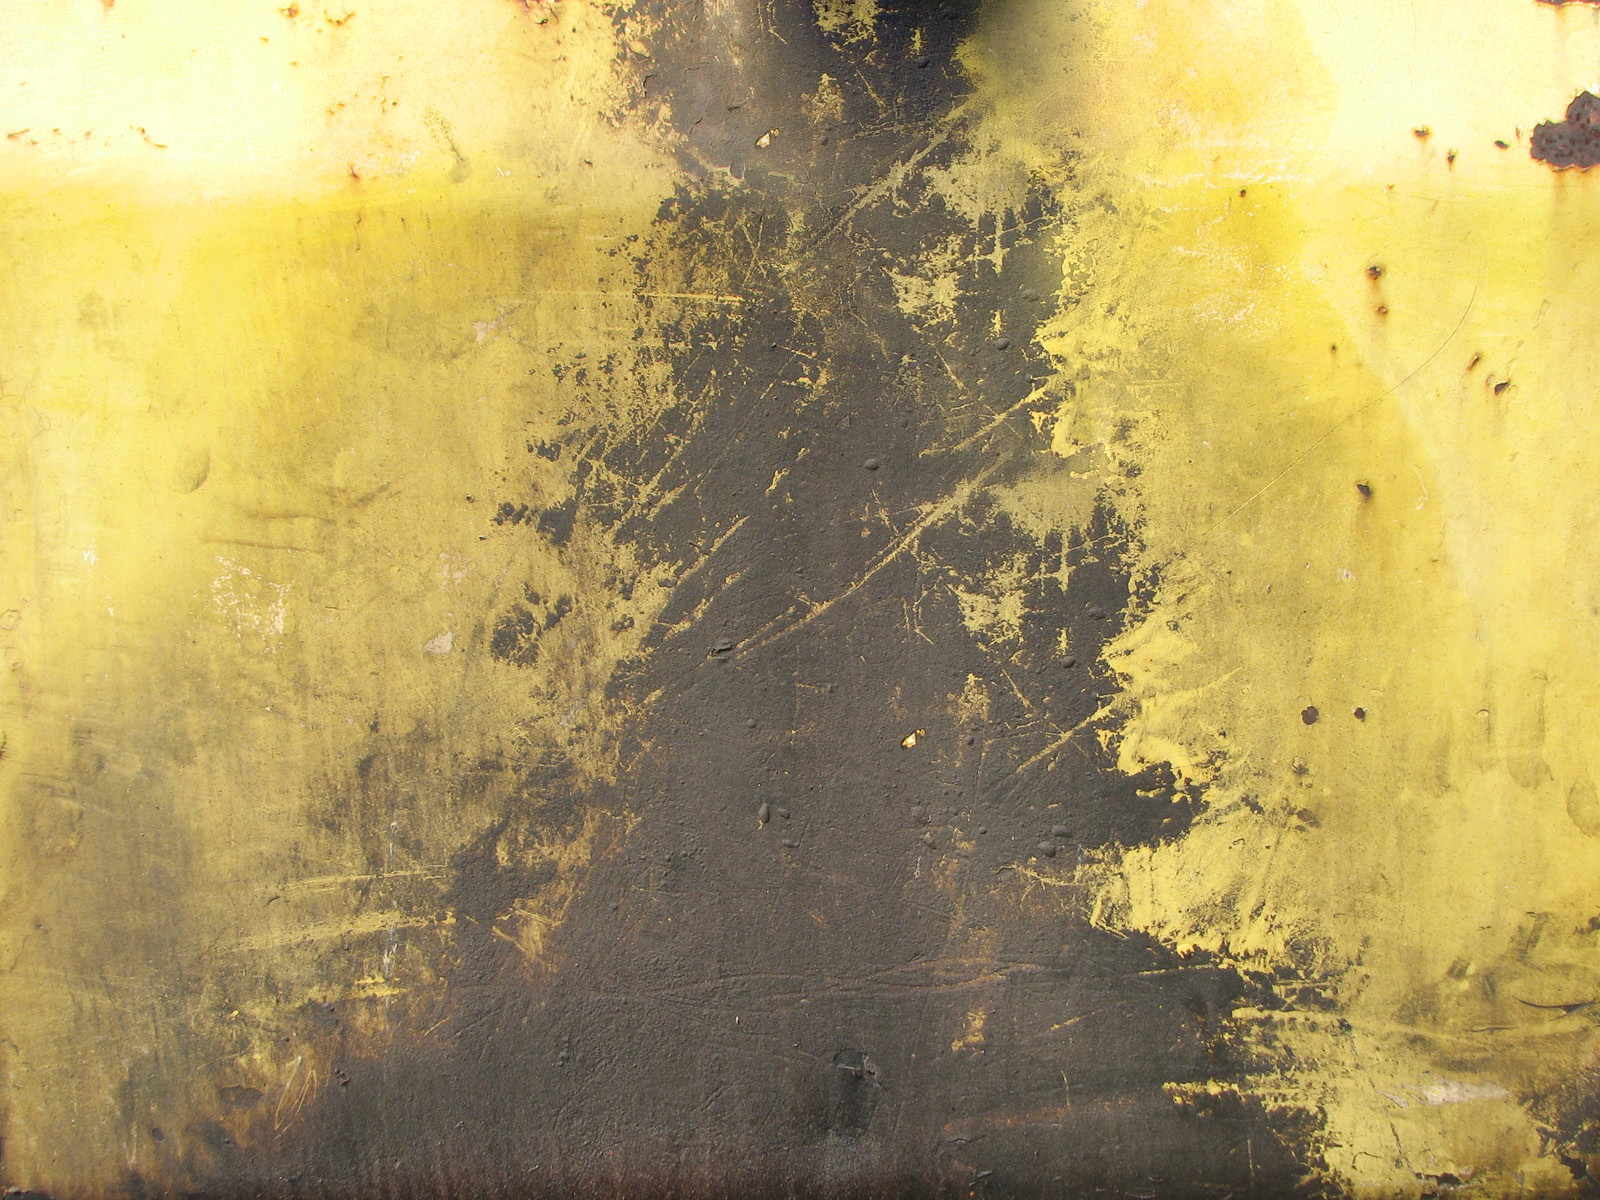 Yellow-Iron-Rusty-04 by